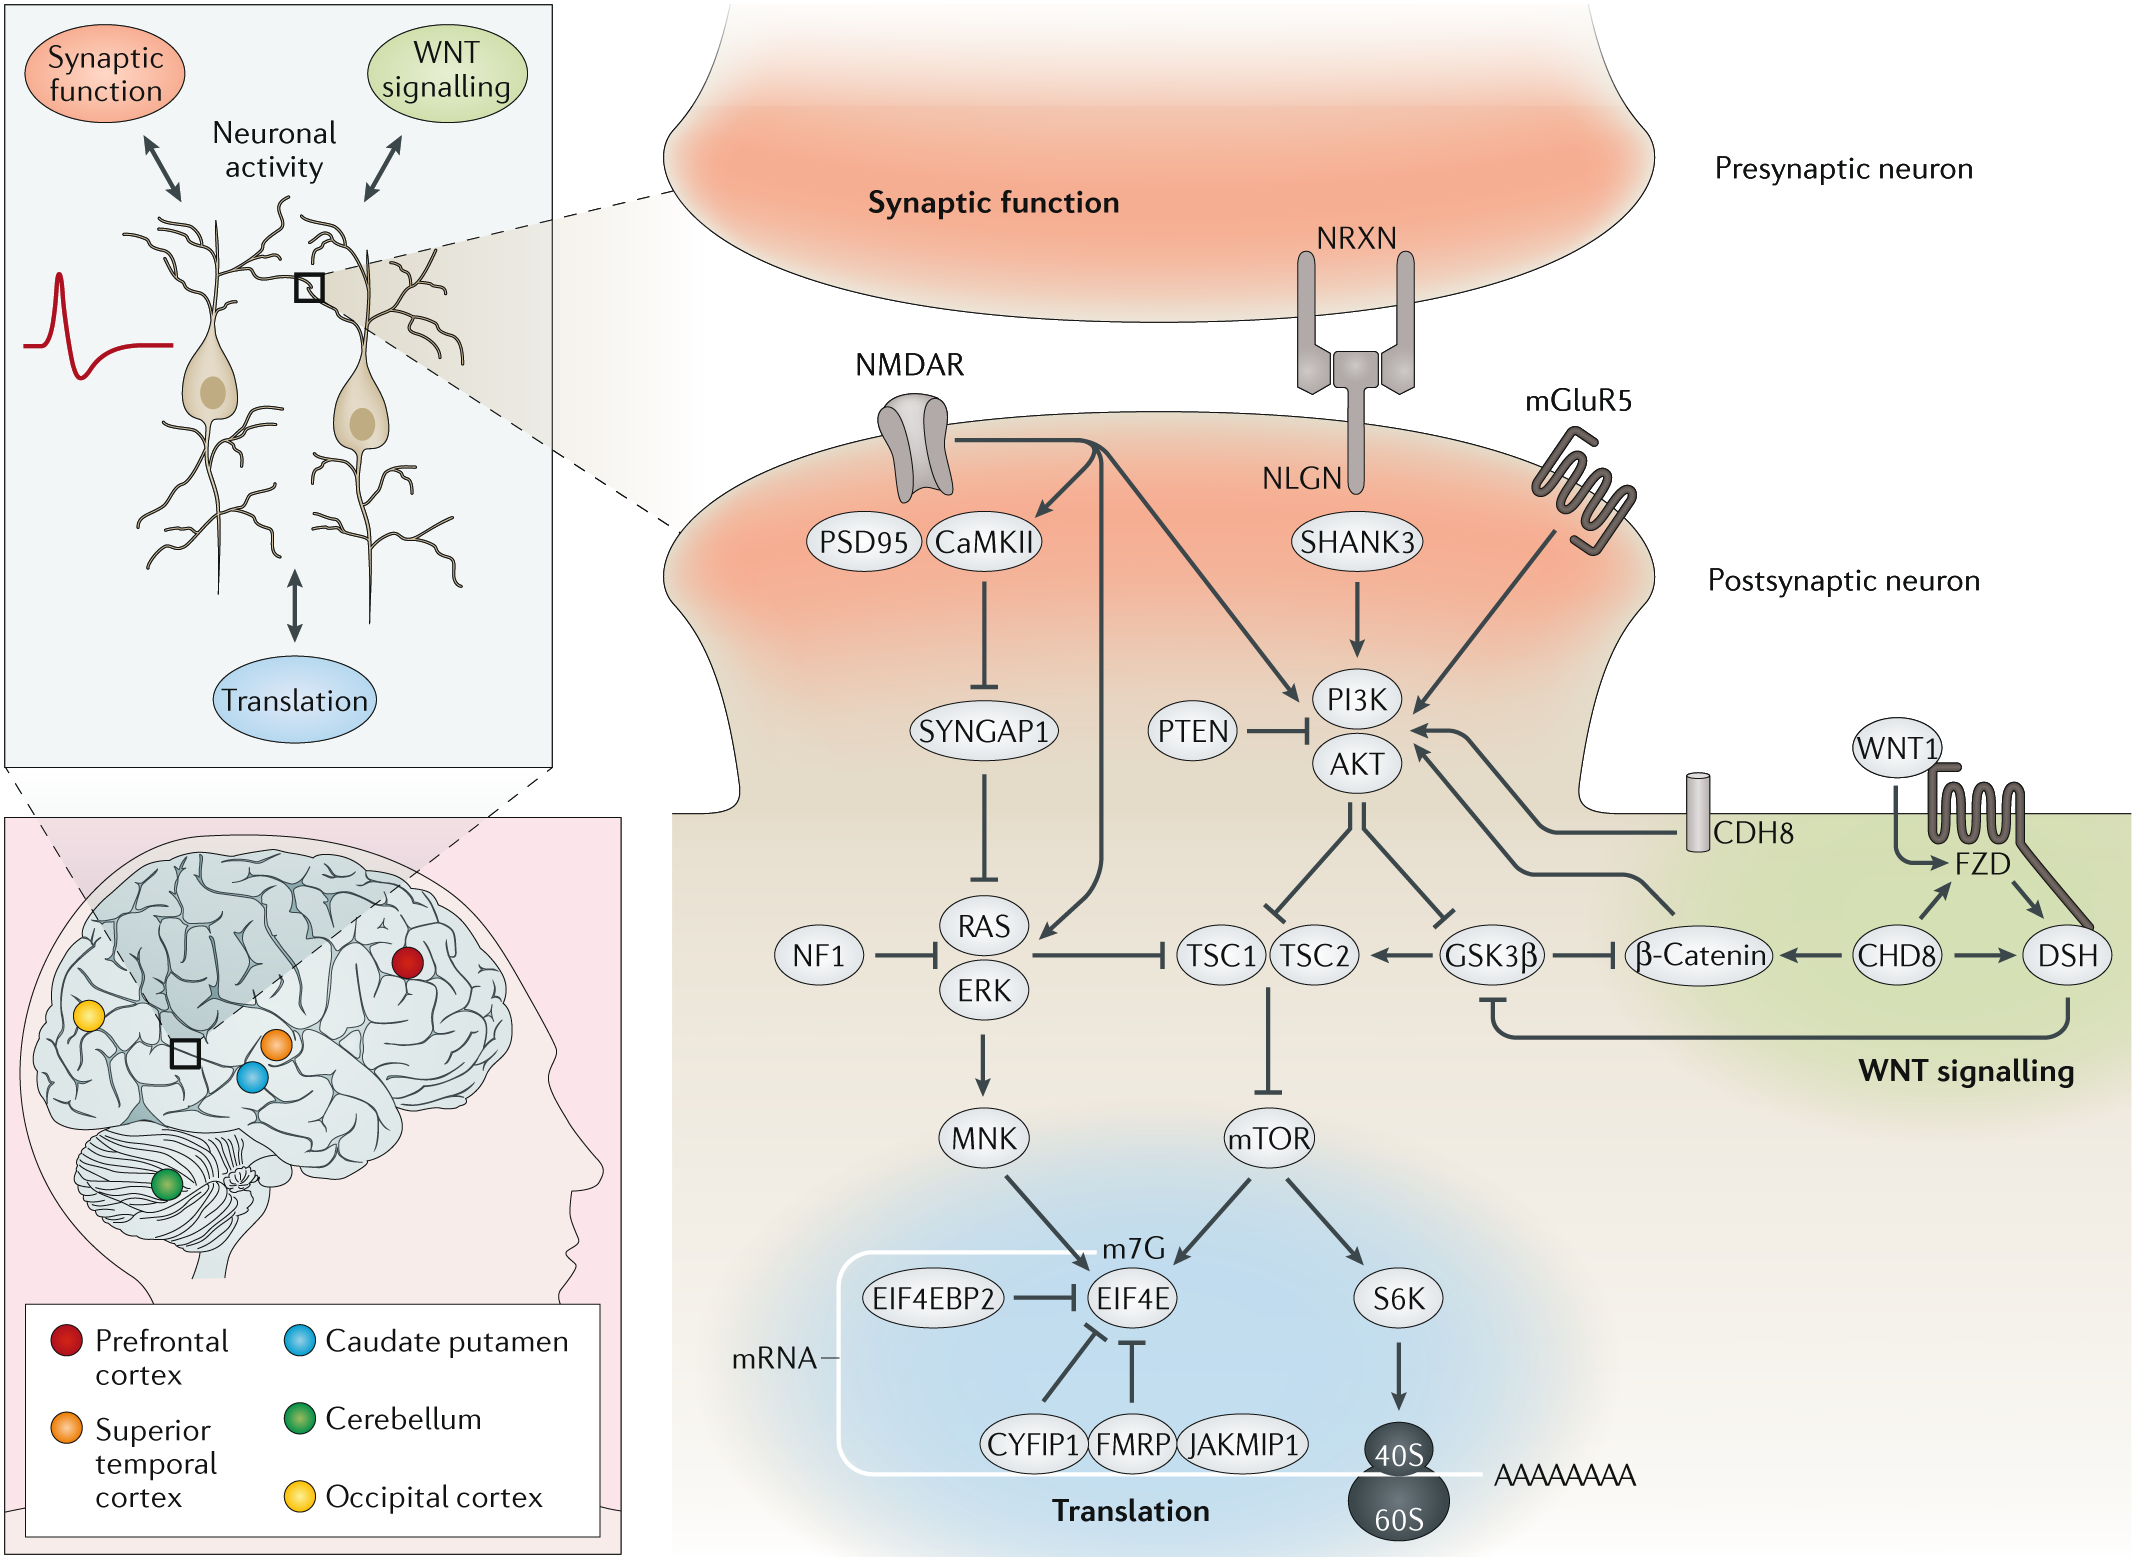 Autism spectrum disorder: insights into convergent mechanisms from tra